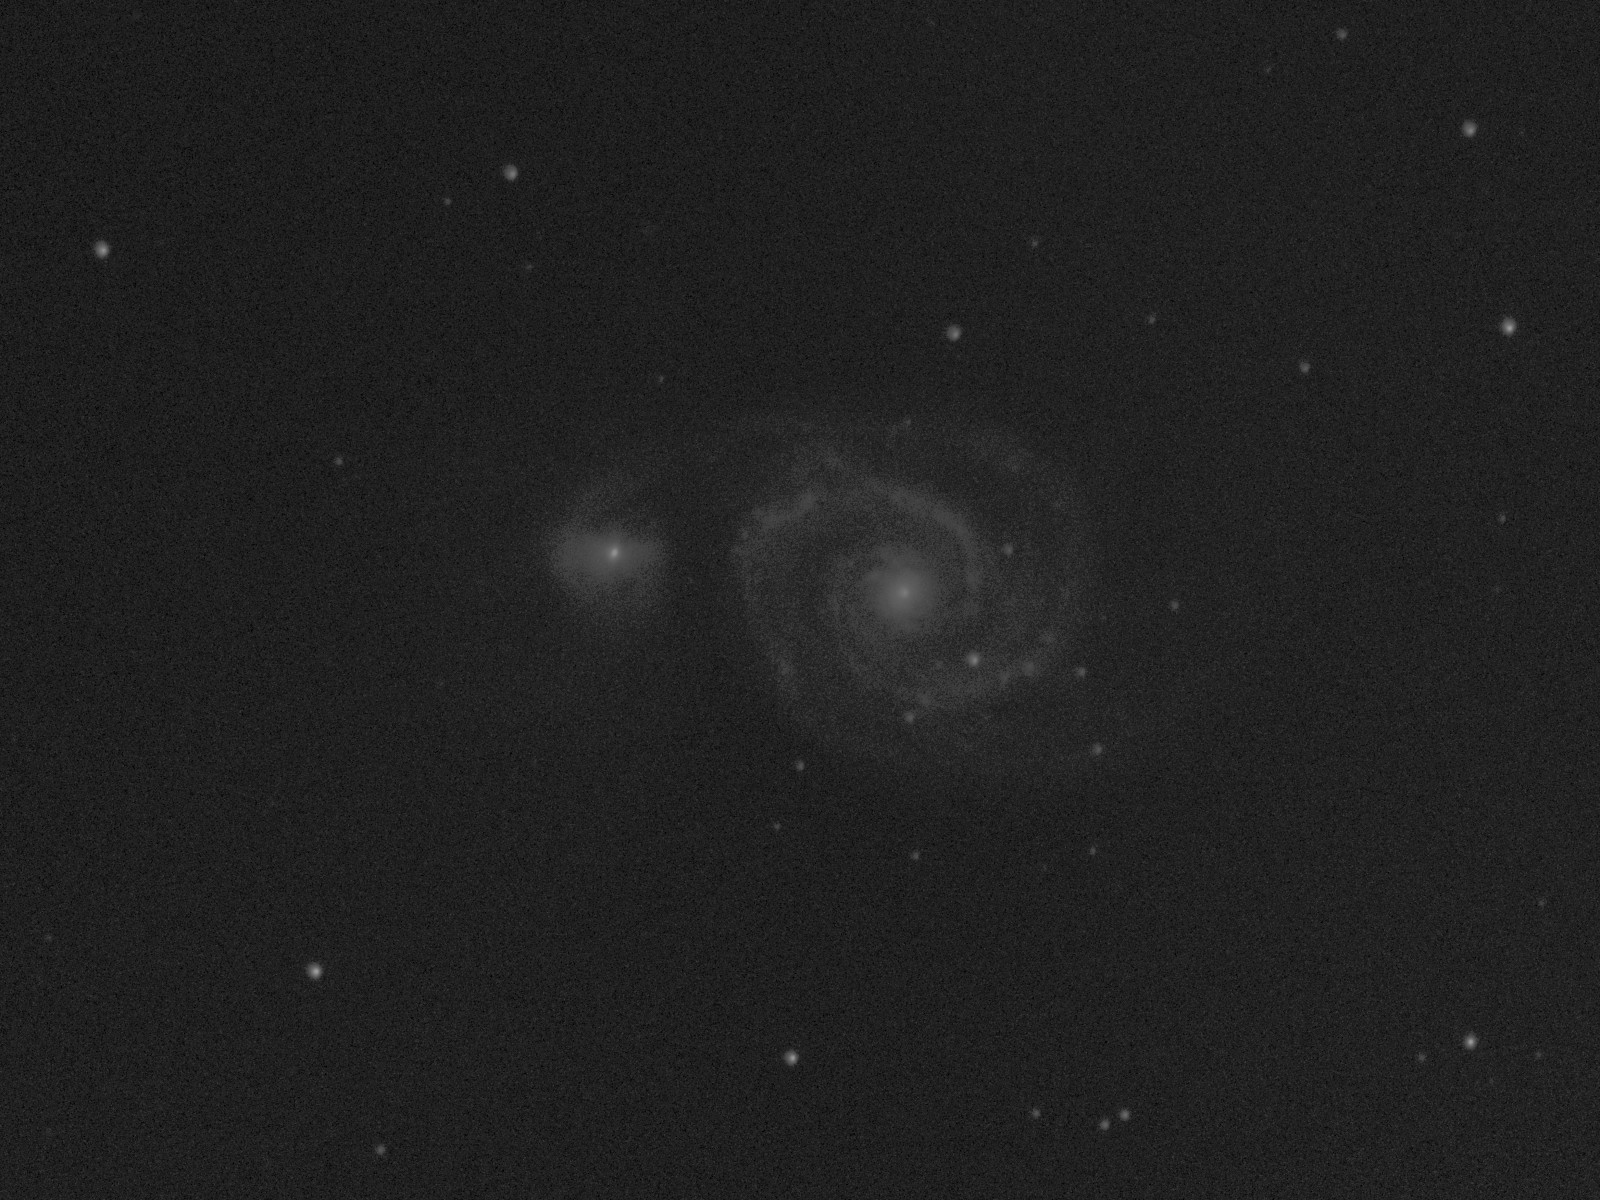 Washed out image of whirlpool galaxy